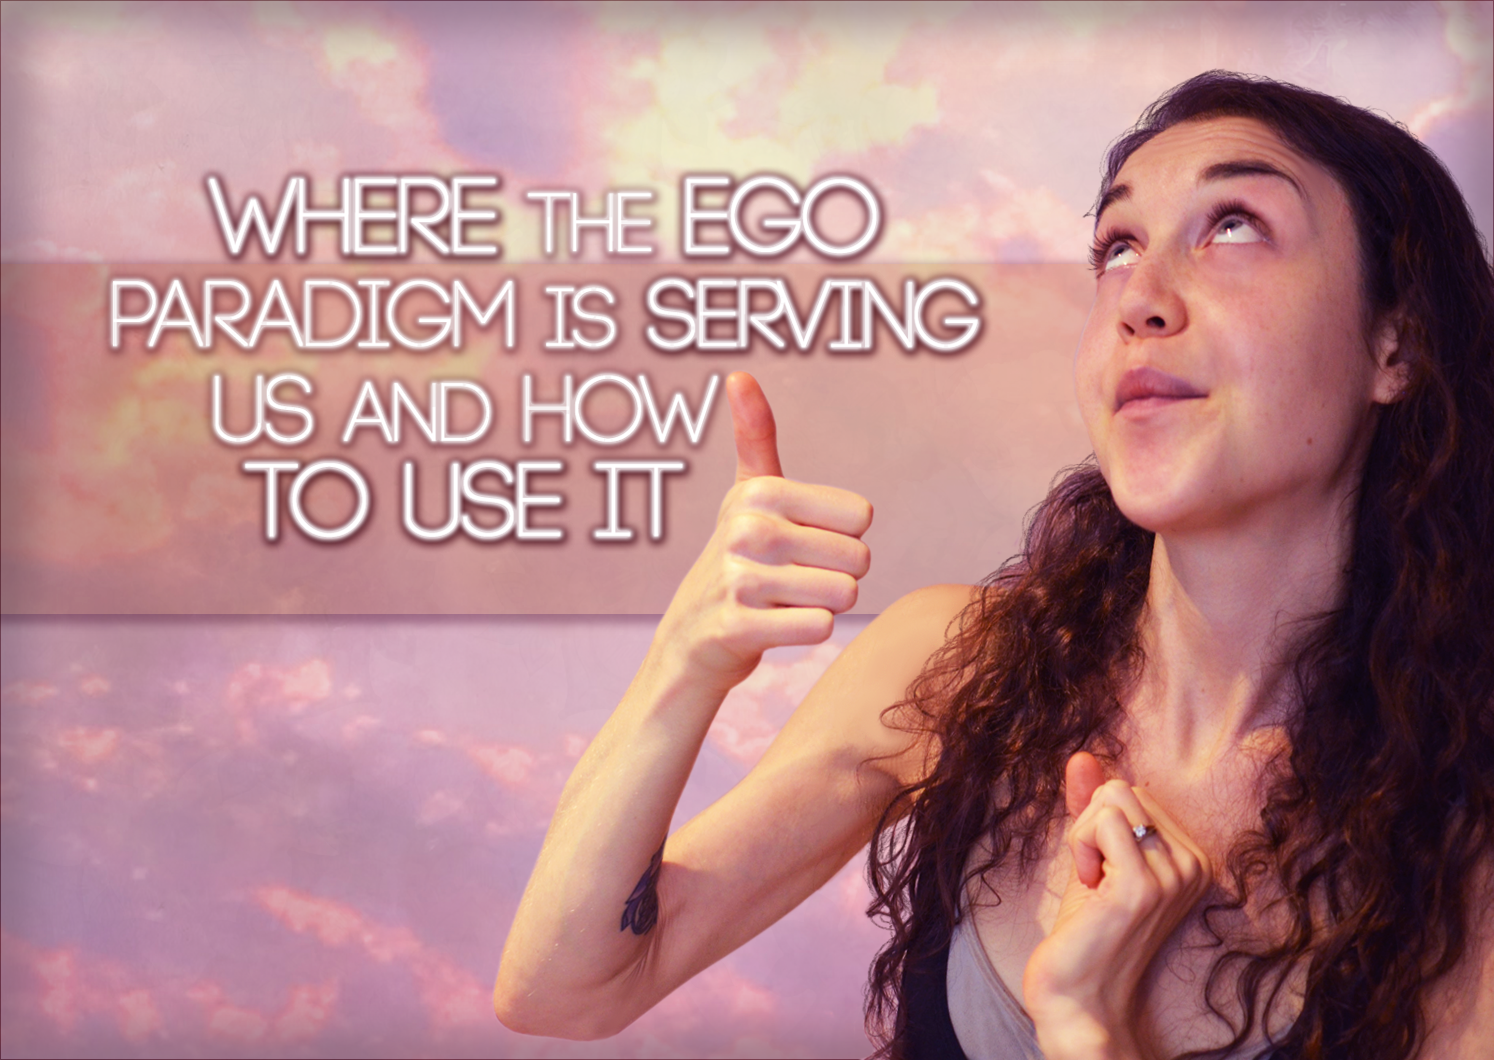 Where The Ego Paradigm Is Serving Us And How To Use It: